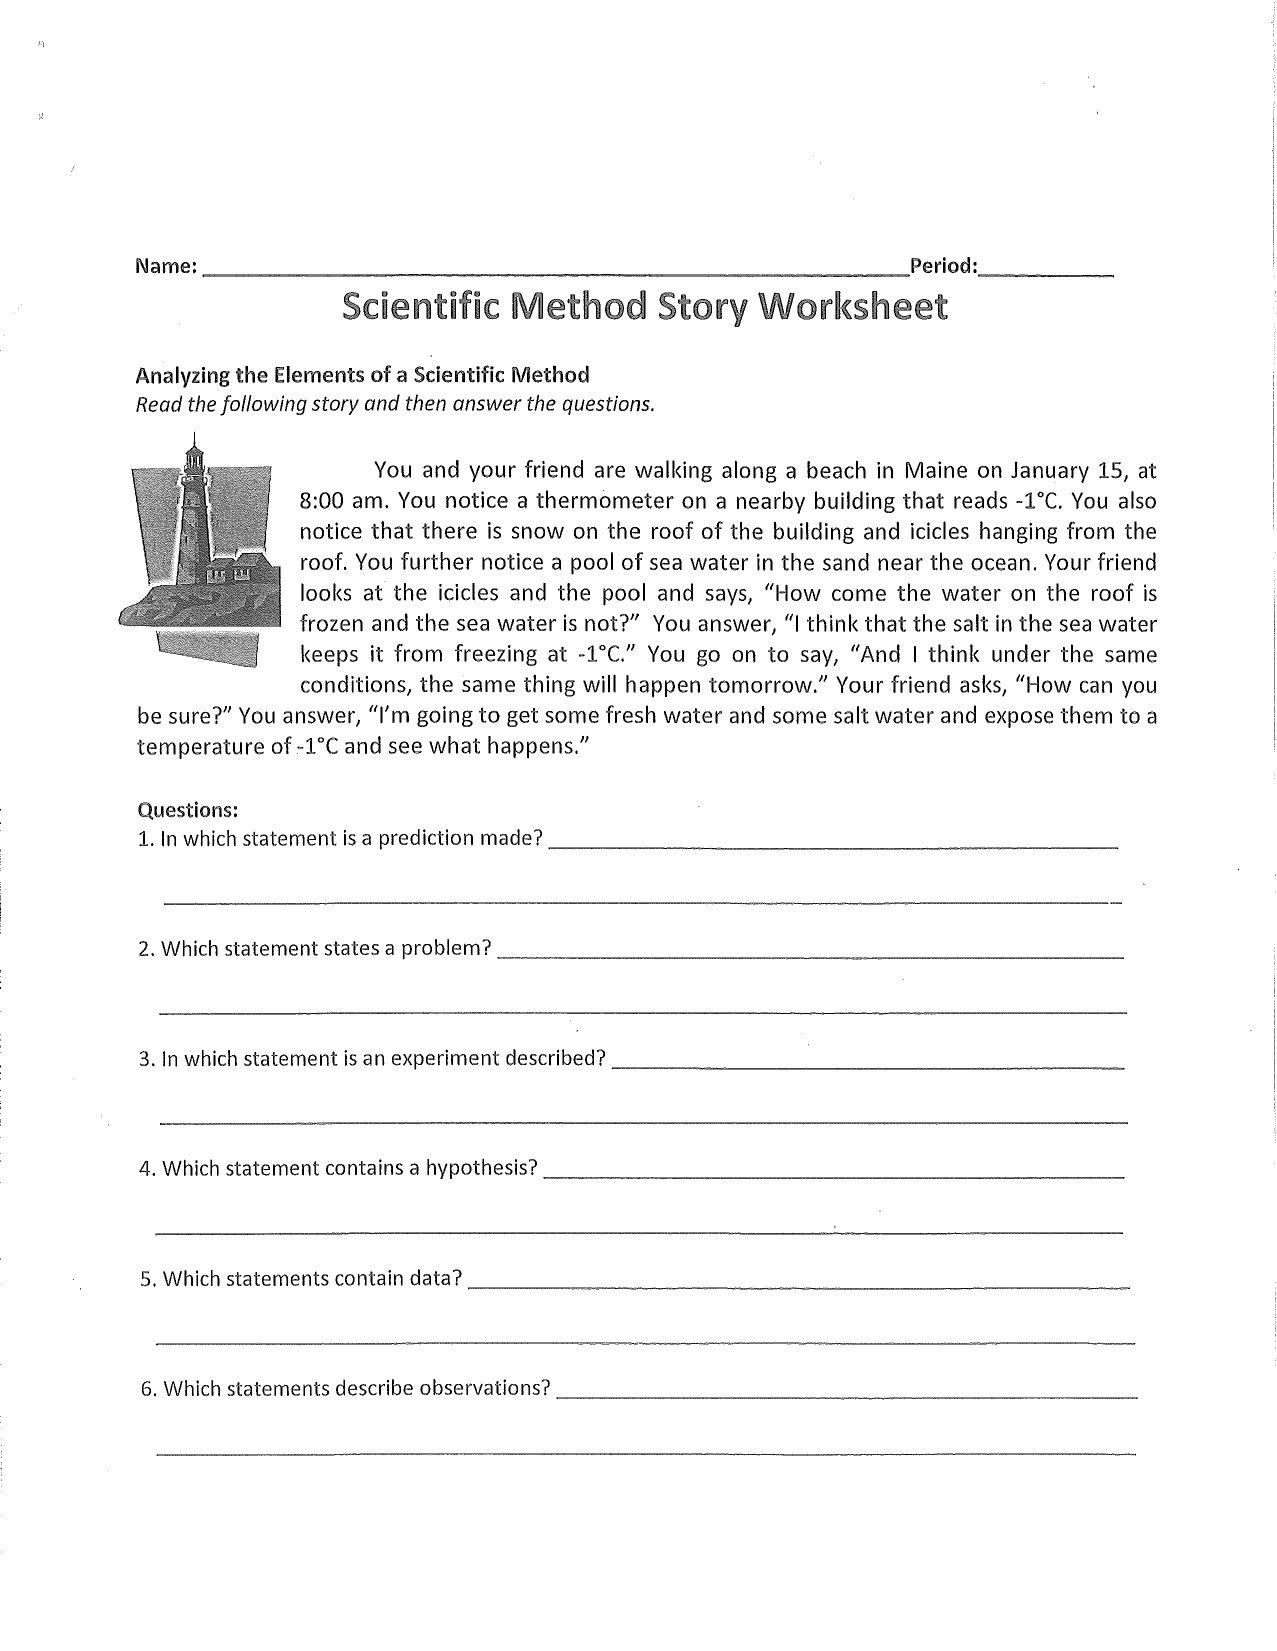 Scientific Method Story Worksheet Worksheet Story